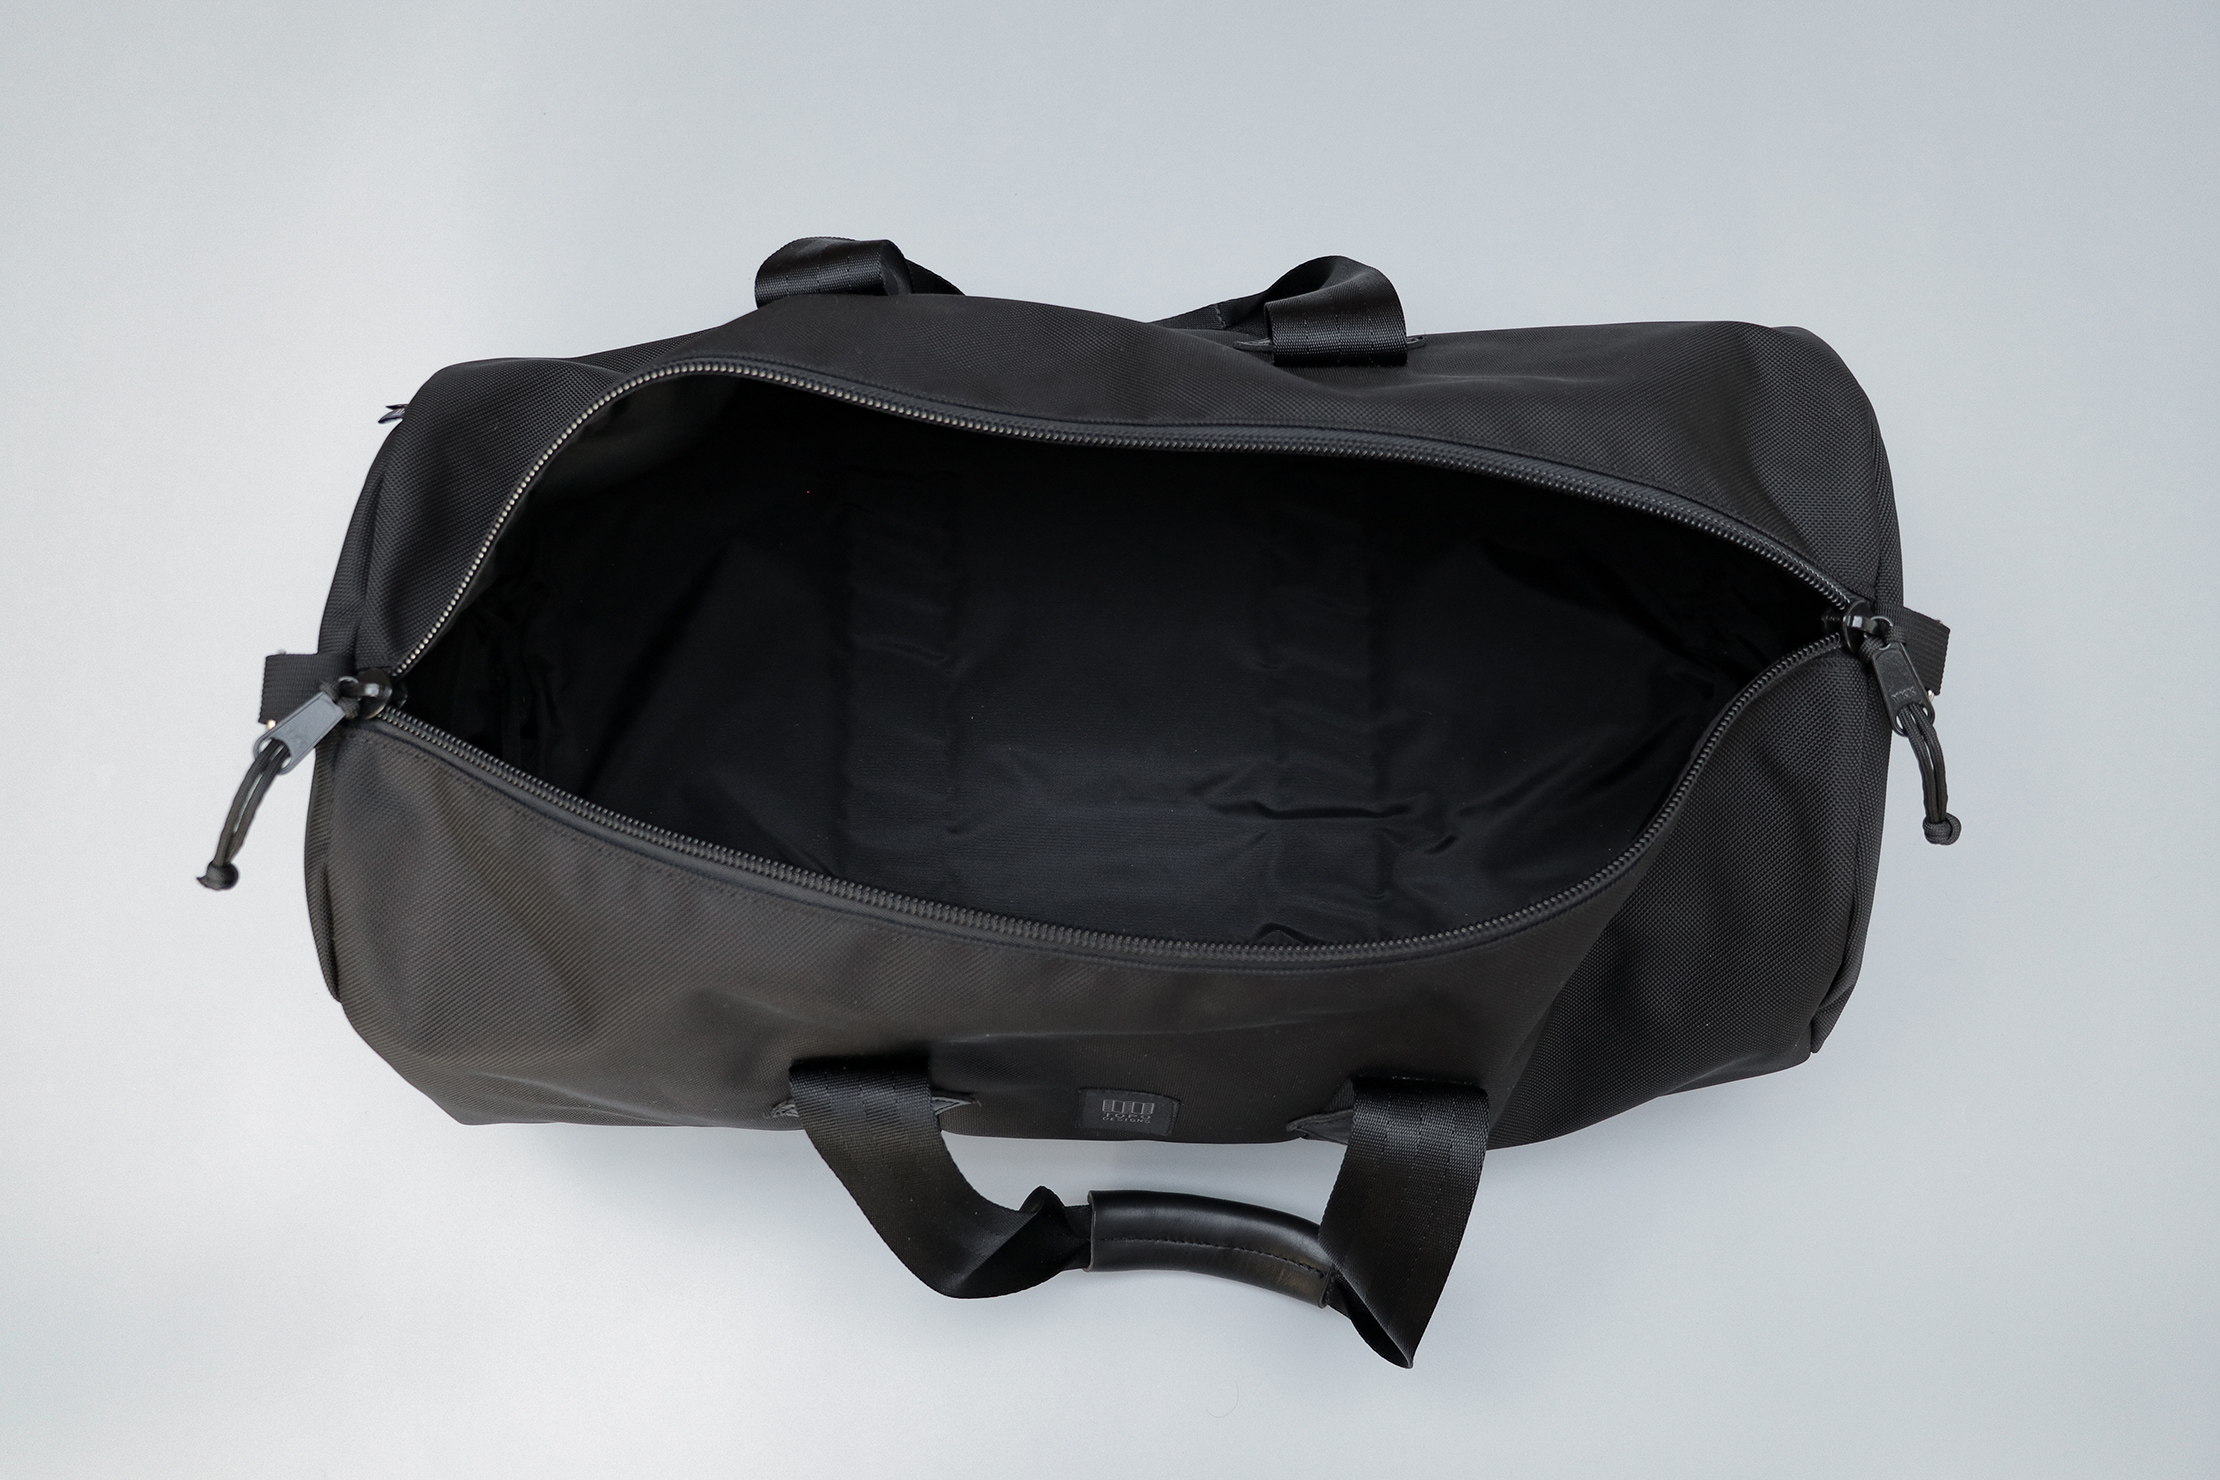 Topo Designs Classic Duffel Main Compartment